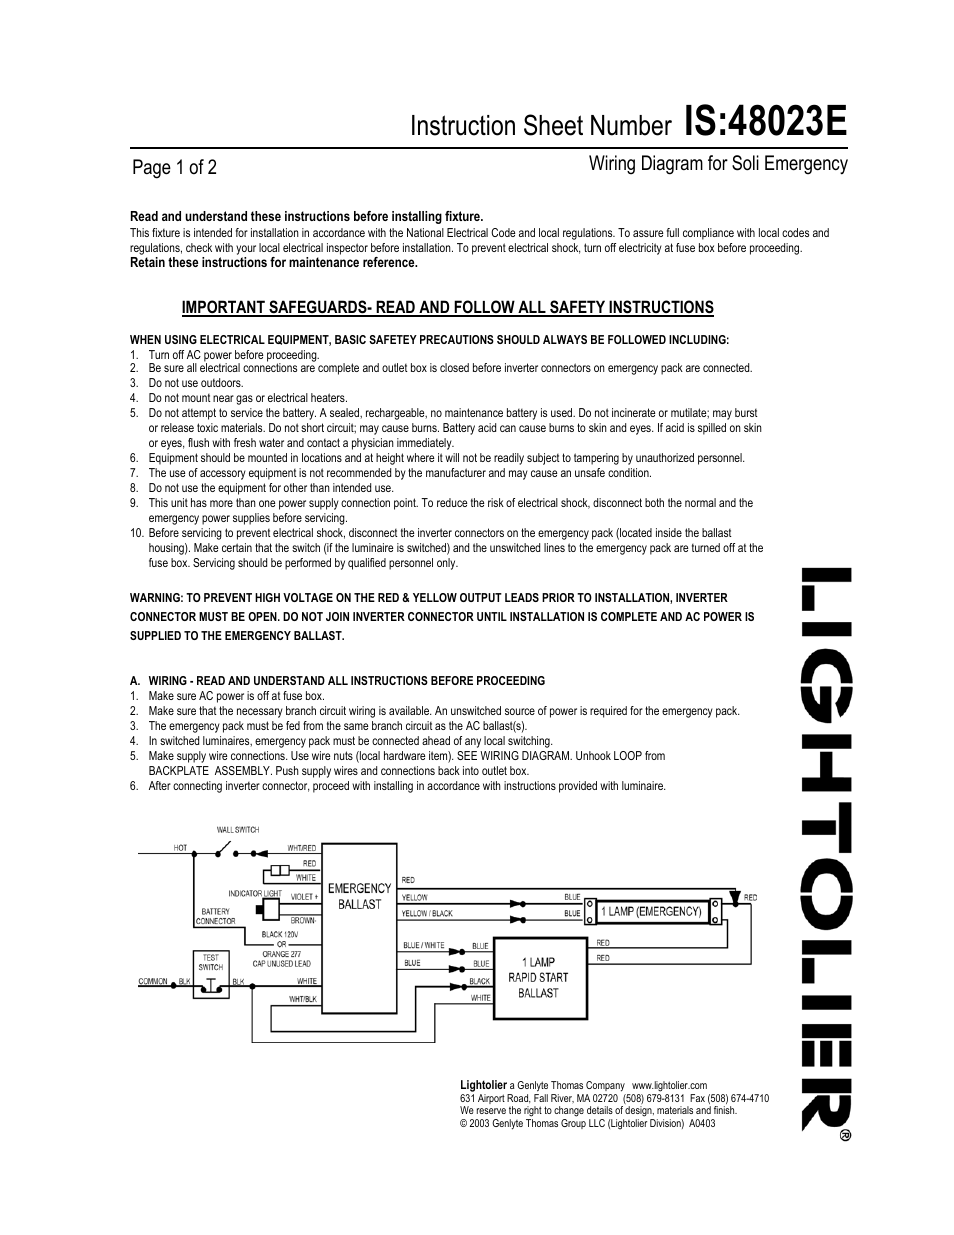 hight resolution of lightolier wiring diagram for soli emergency 48023e user manual 2 pages